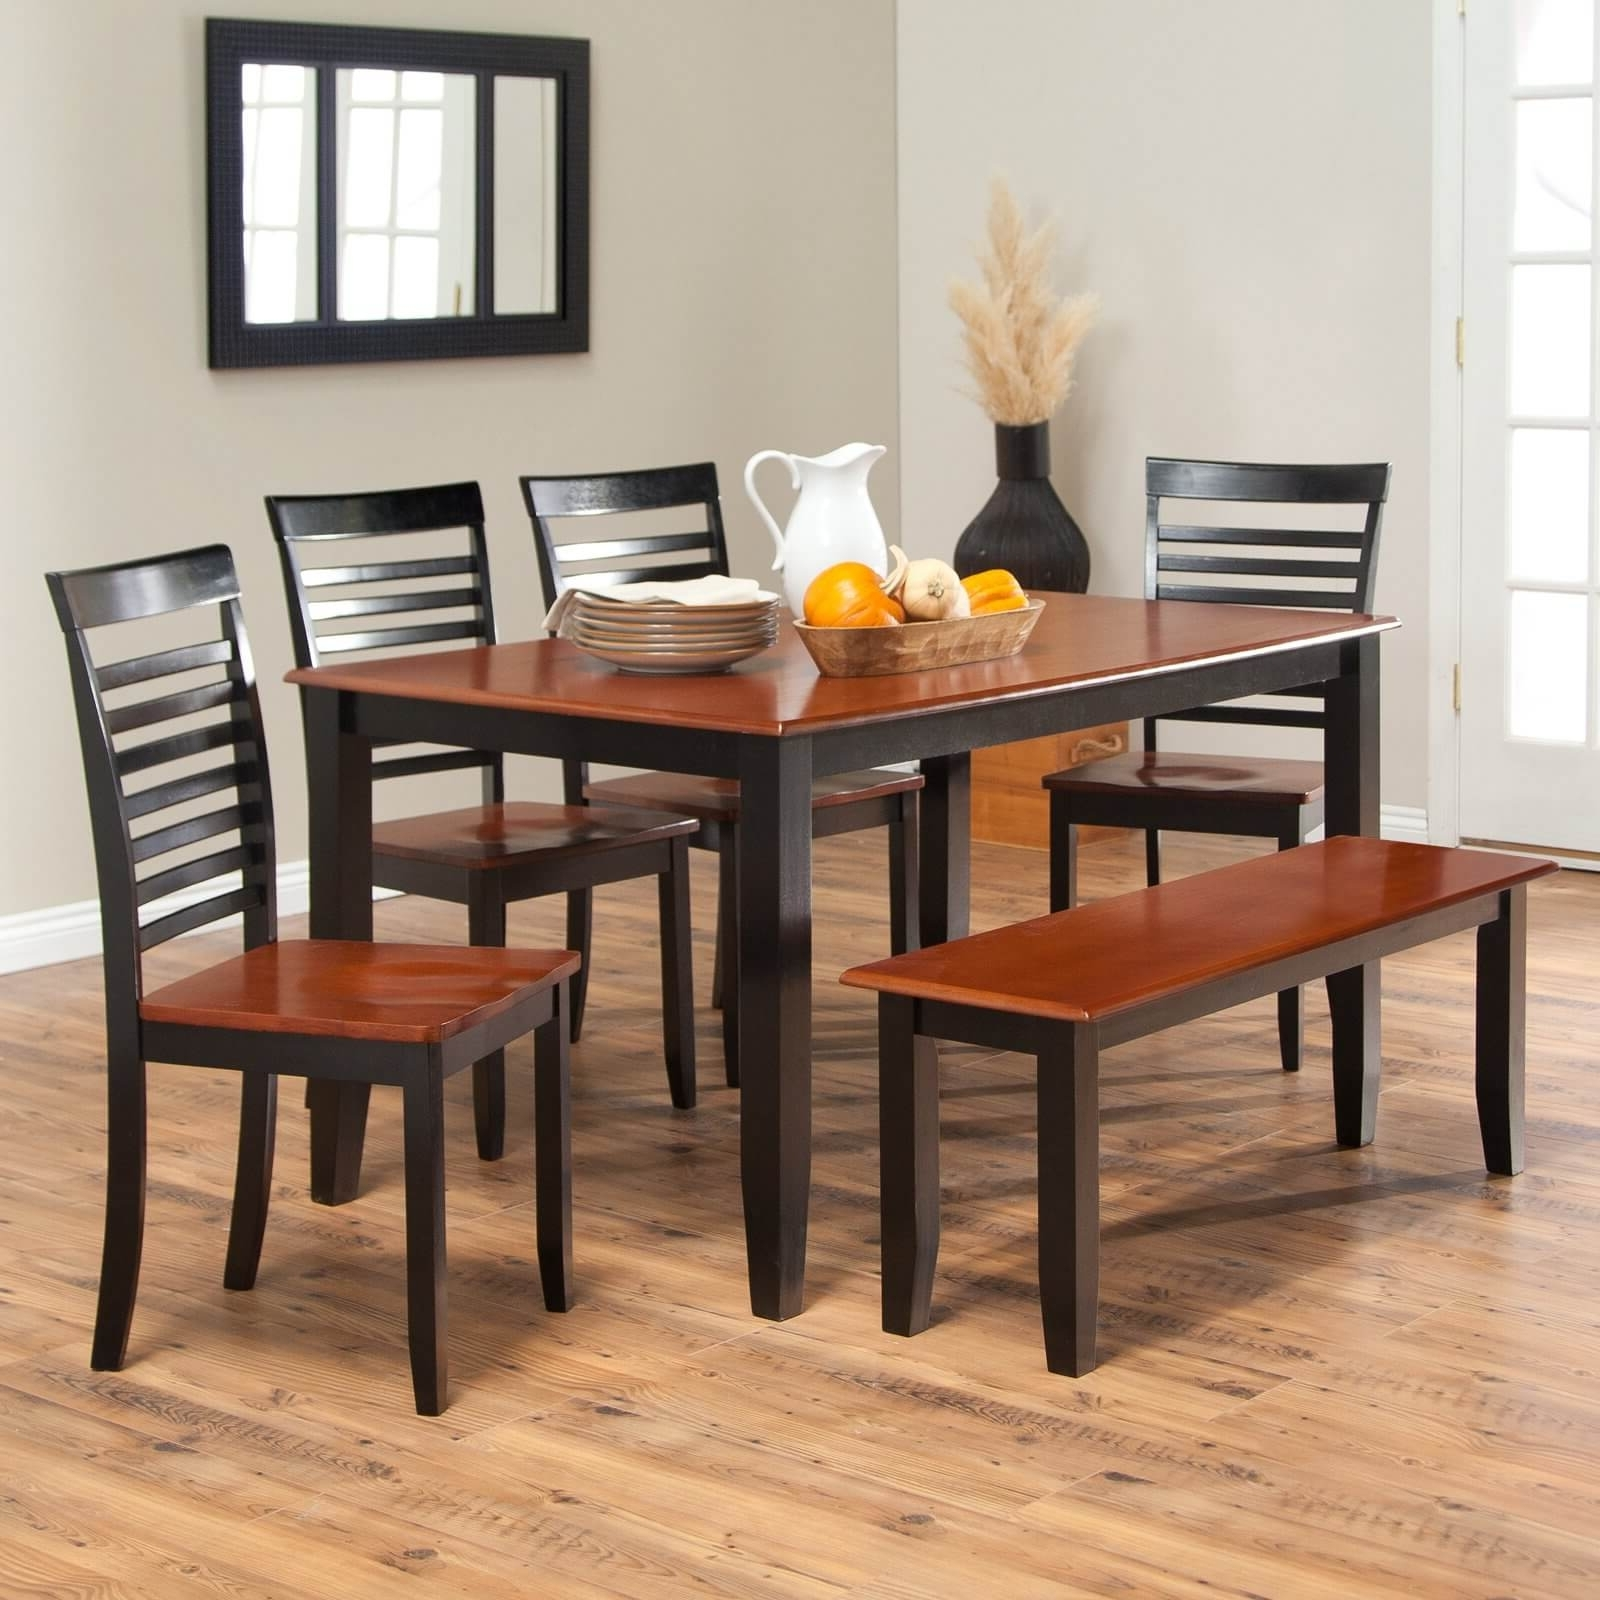 Craftsman 5 Piece Round Dining Sets With Uph Side Chairs Inside Favorite 26 Dining Room Sets (Big And Small) With Bench Seating (2018) (Gallery 12 of 25)